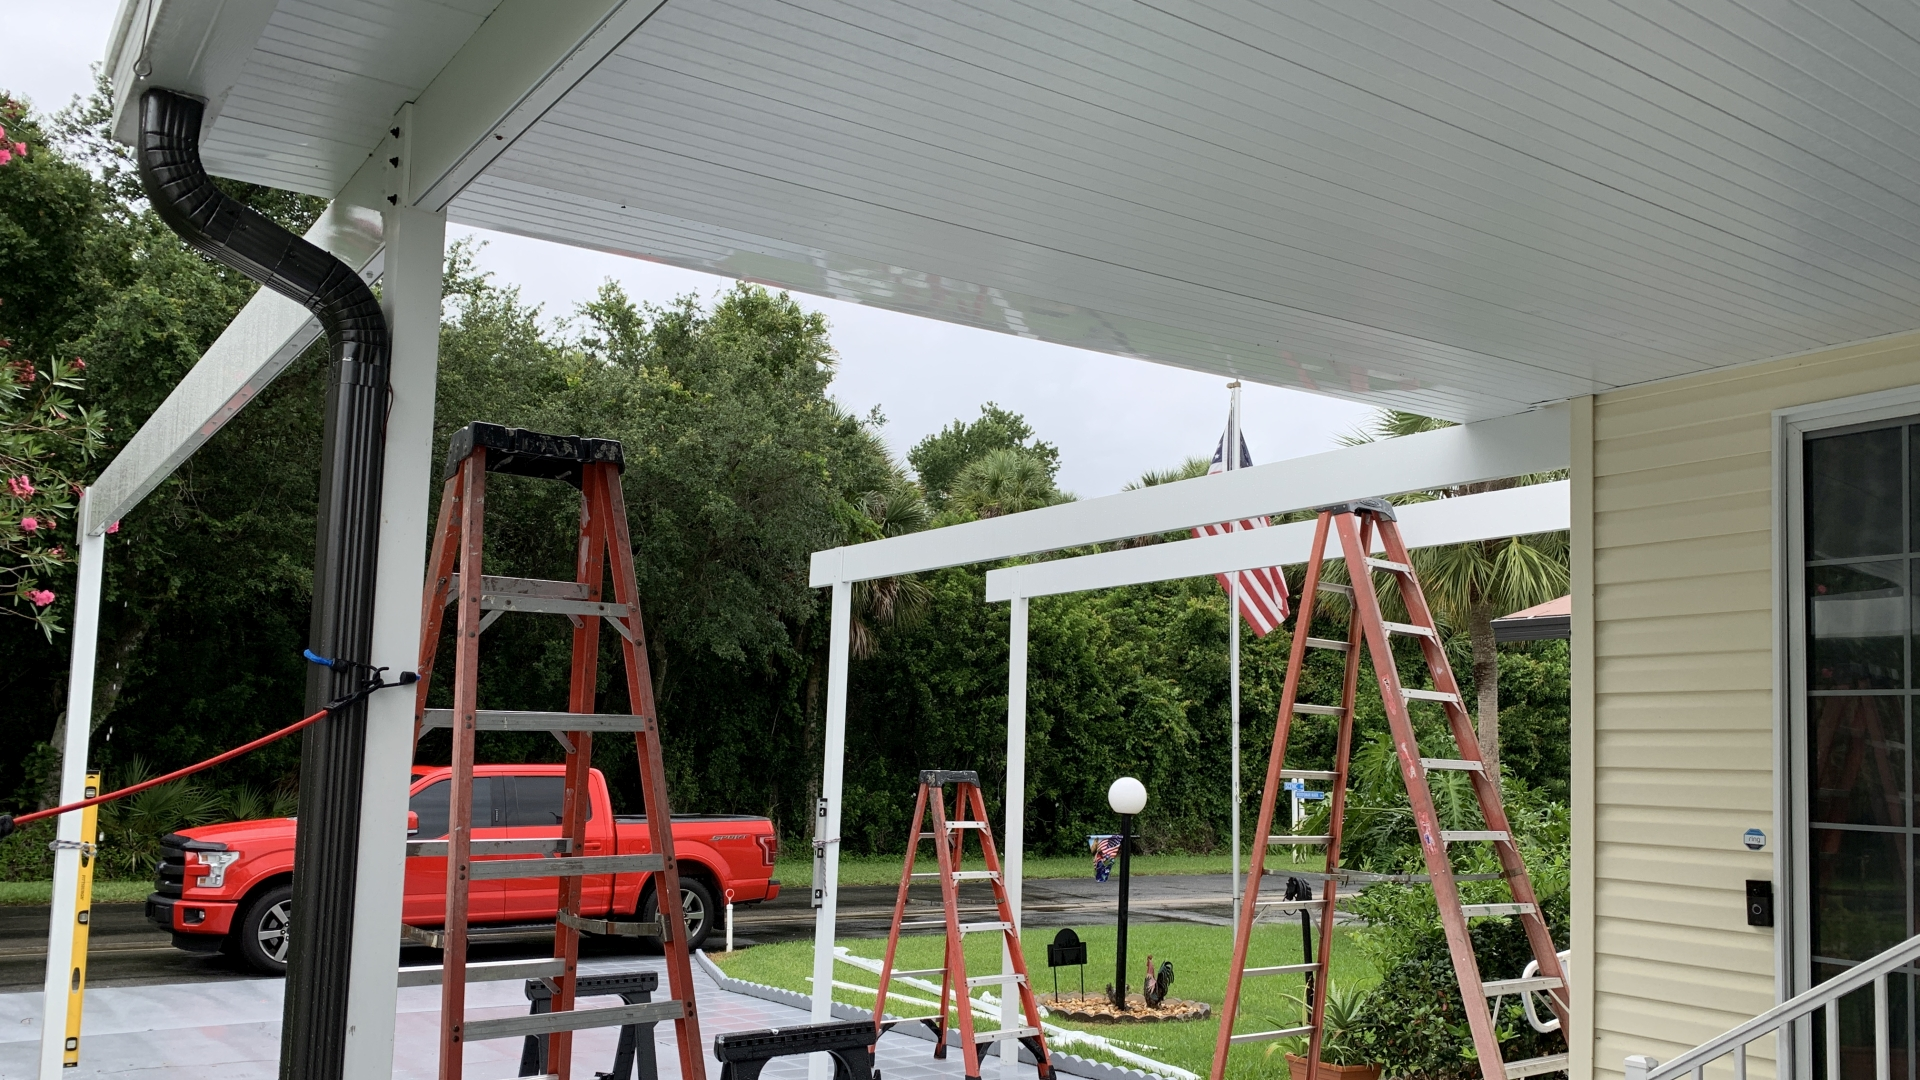 custom carport expansion in progress